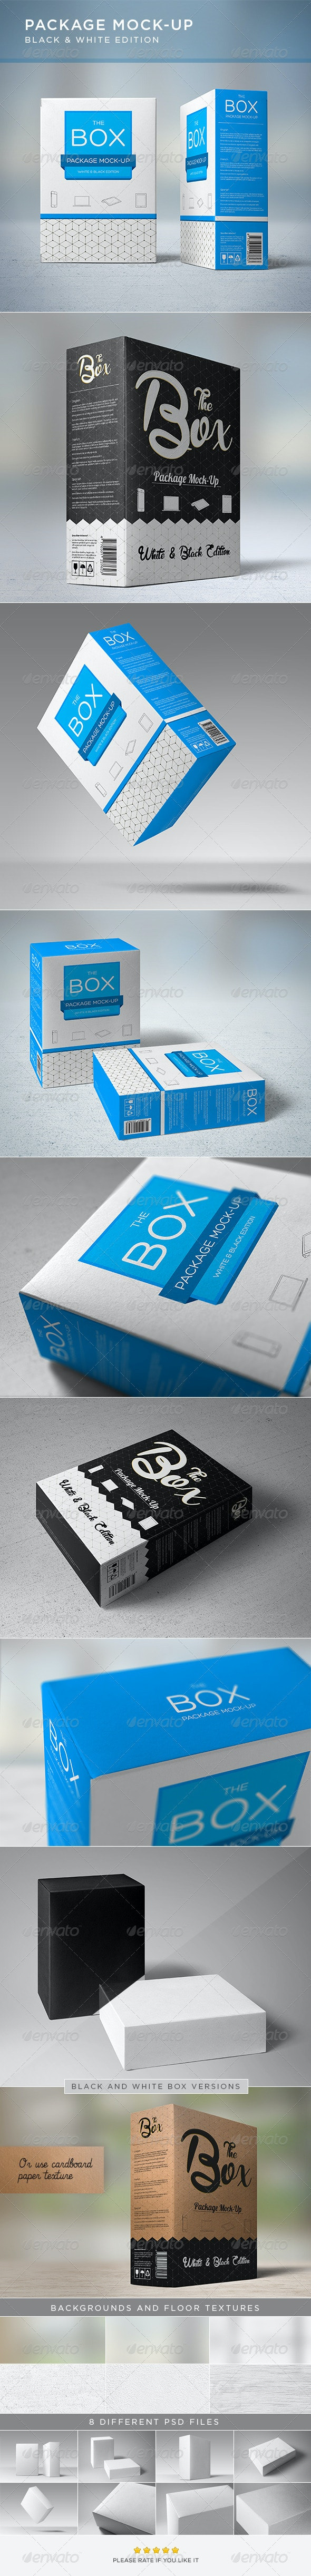 Package Mock-Up - Miscellaneous Packaging